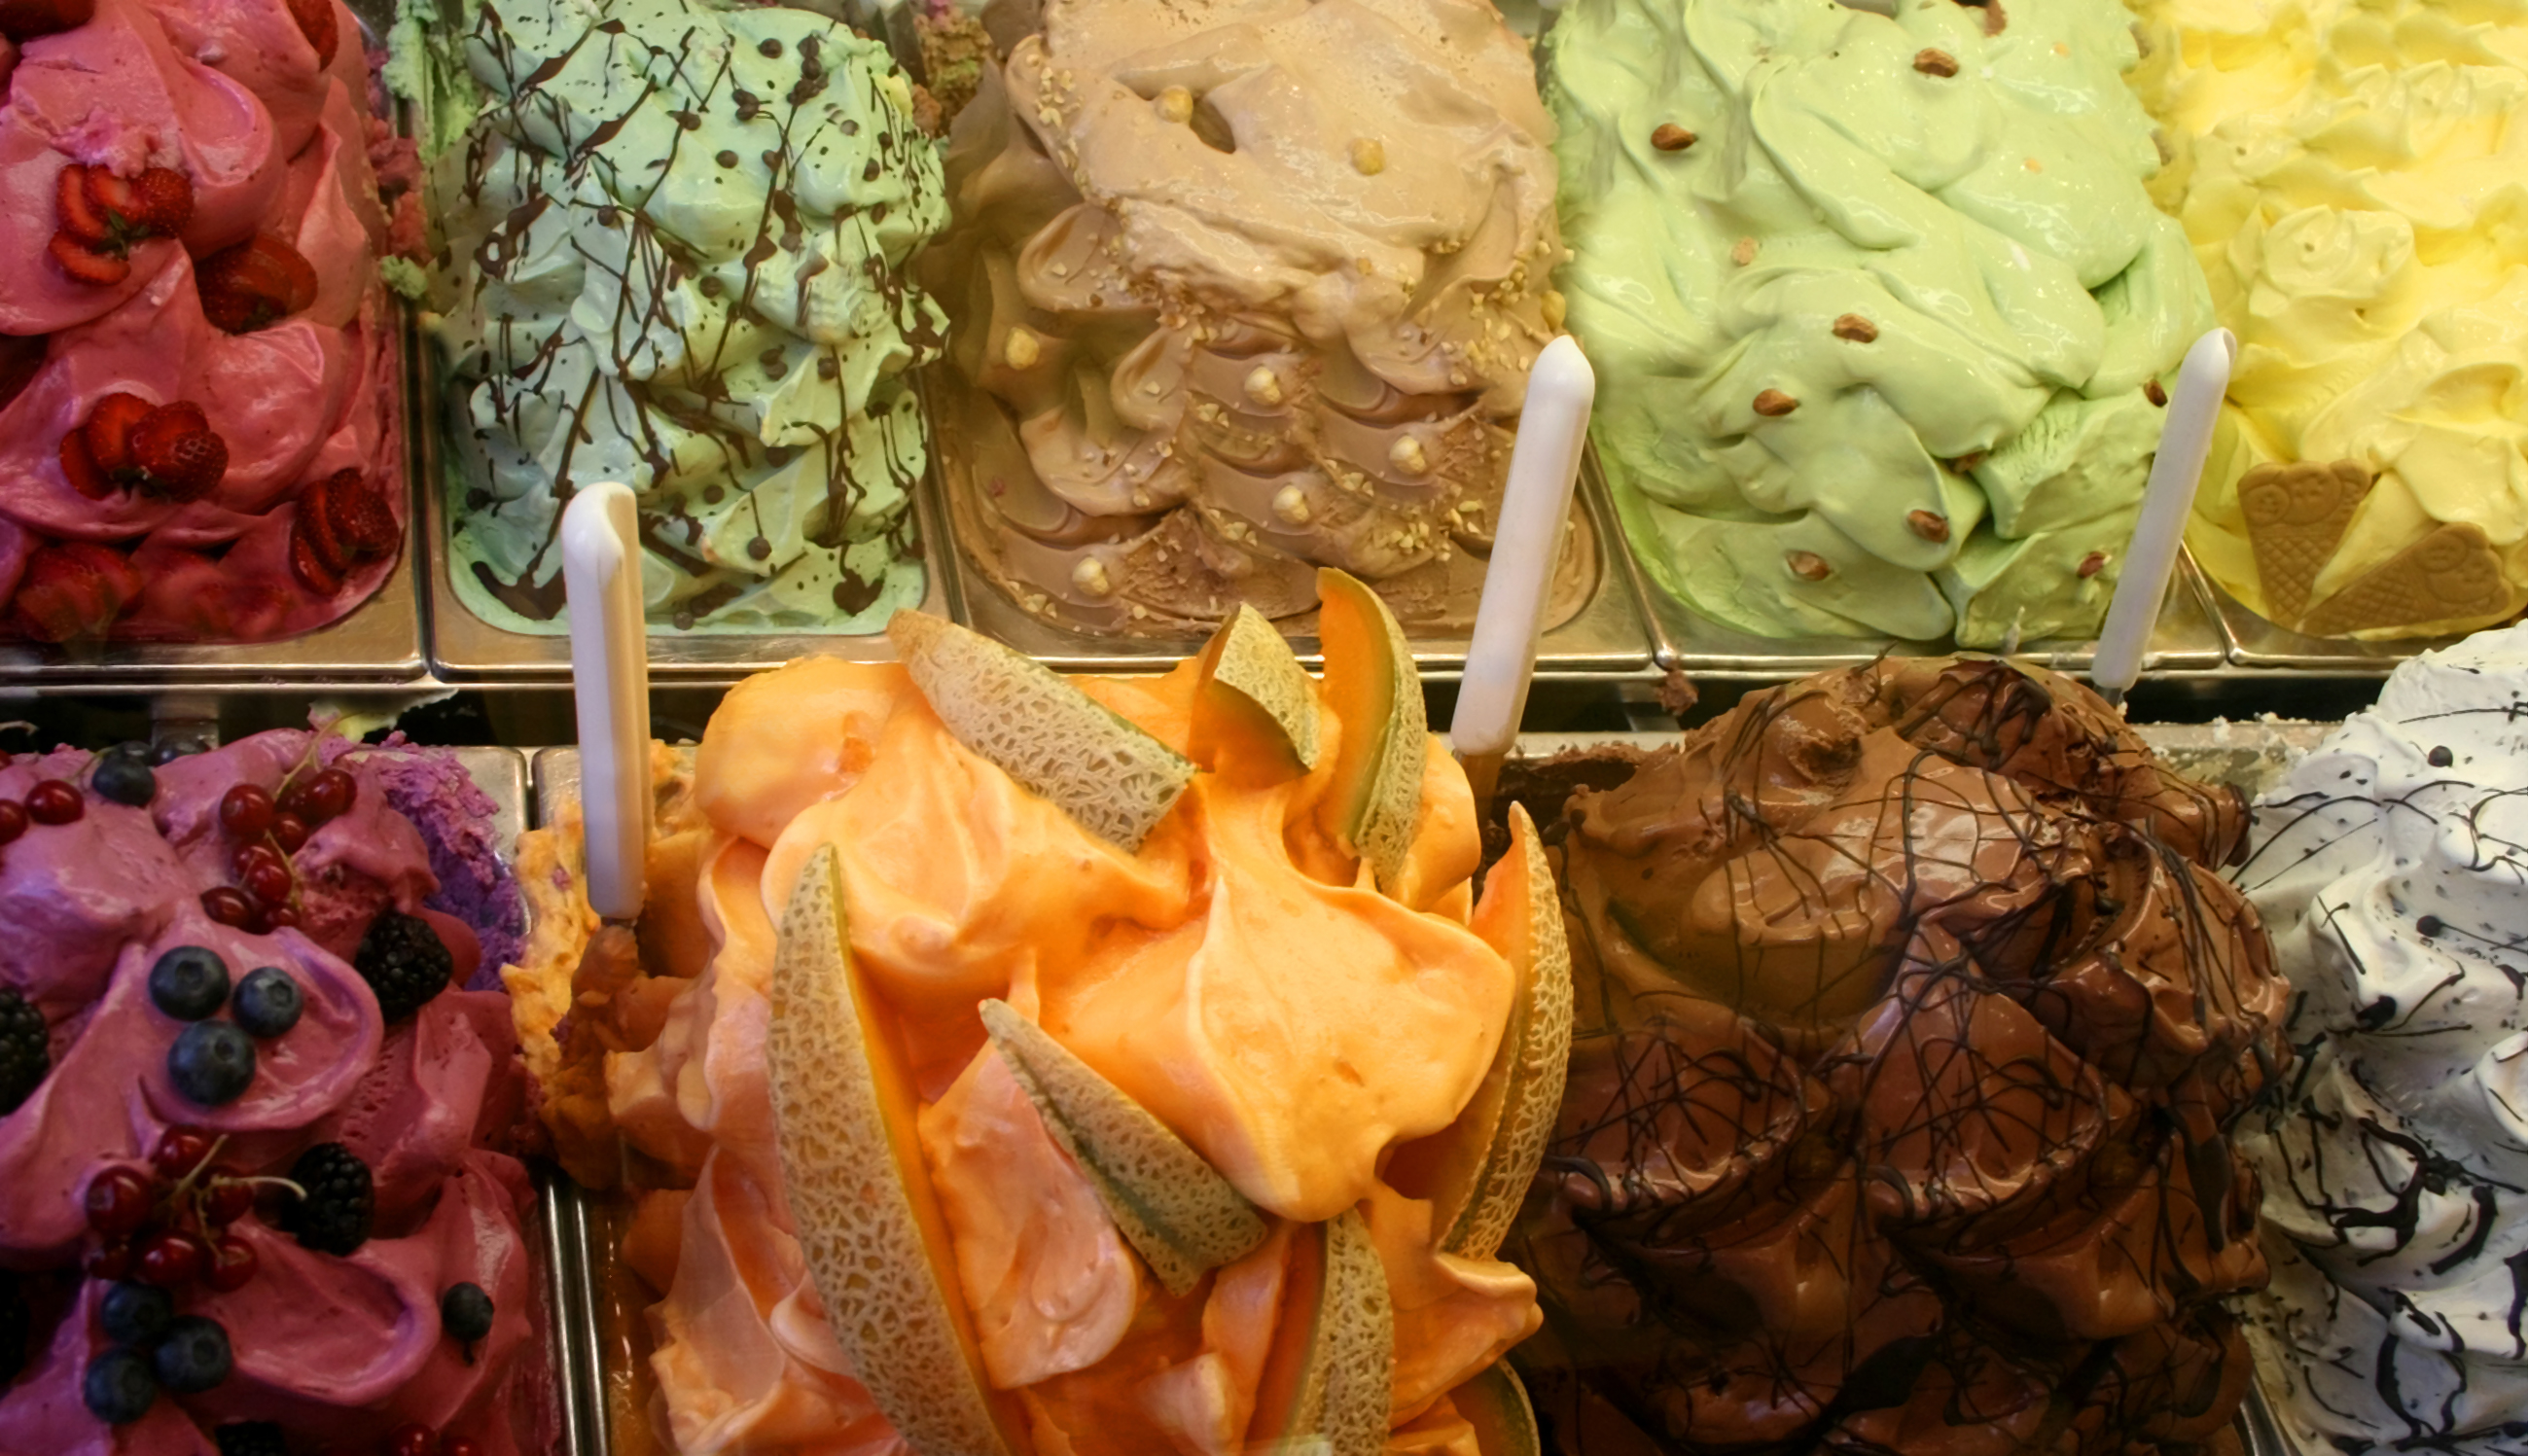 gelato-display-6185227